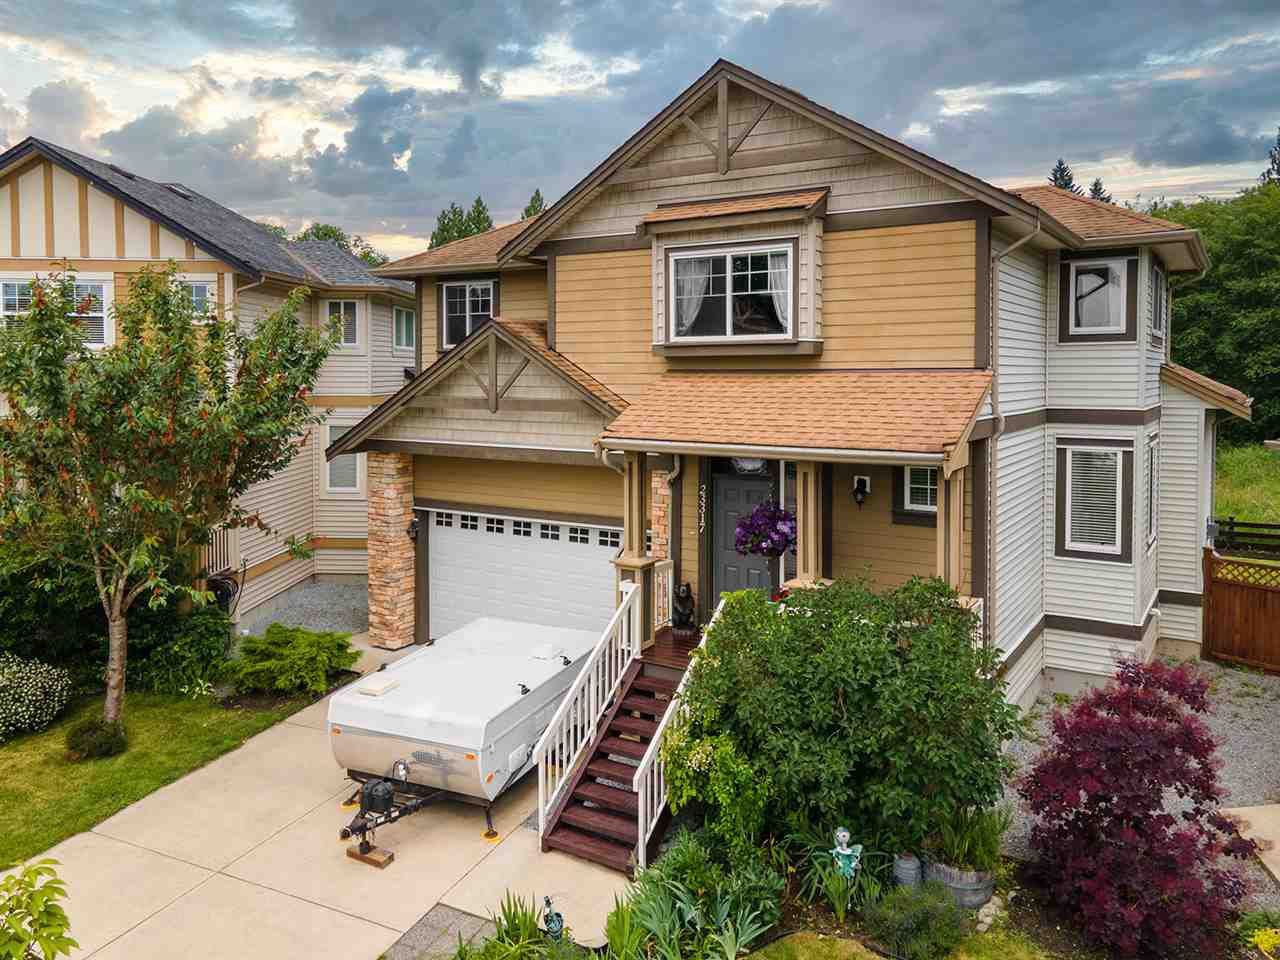 Main Photo: 23317 GRIFFEN Road in Maple Ridge: Cottonwood MR House for sale : MLS®# R2469480